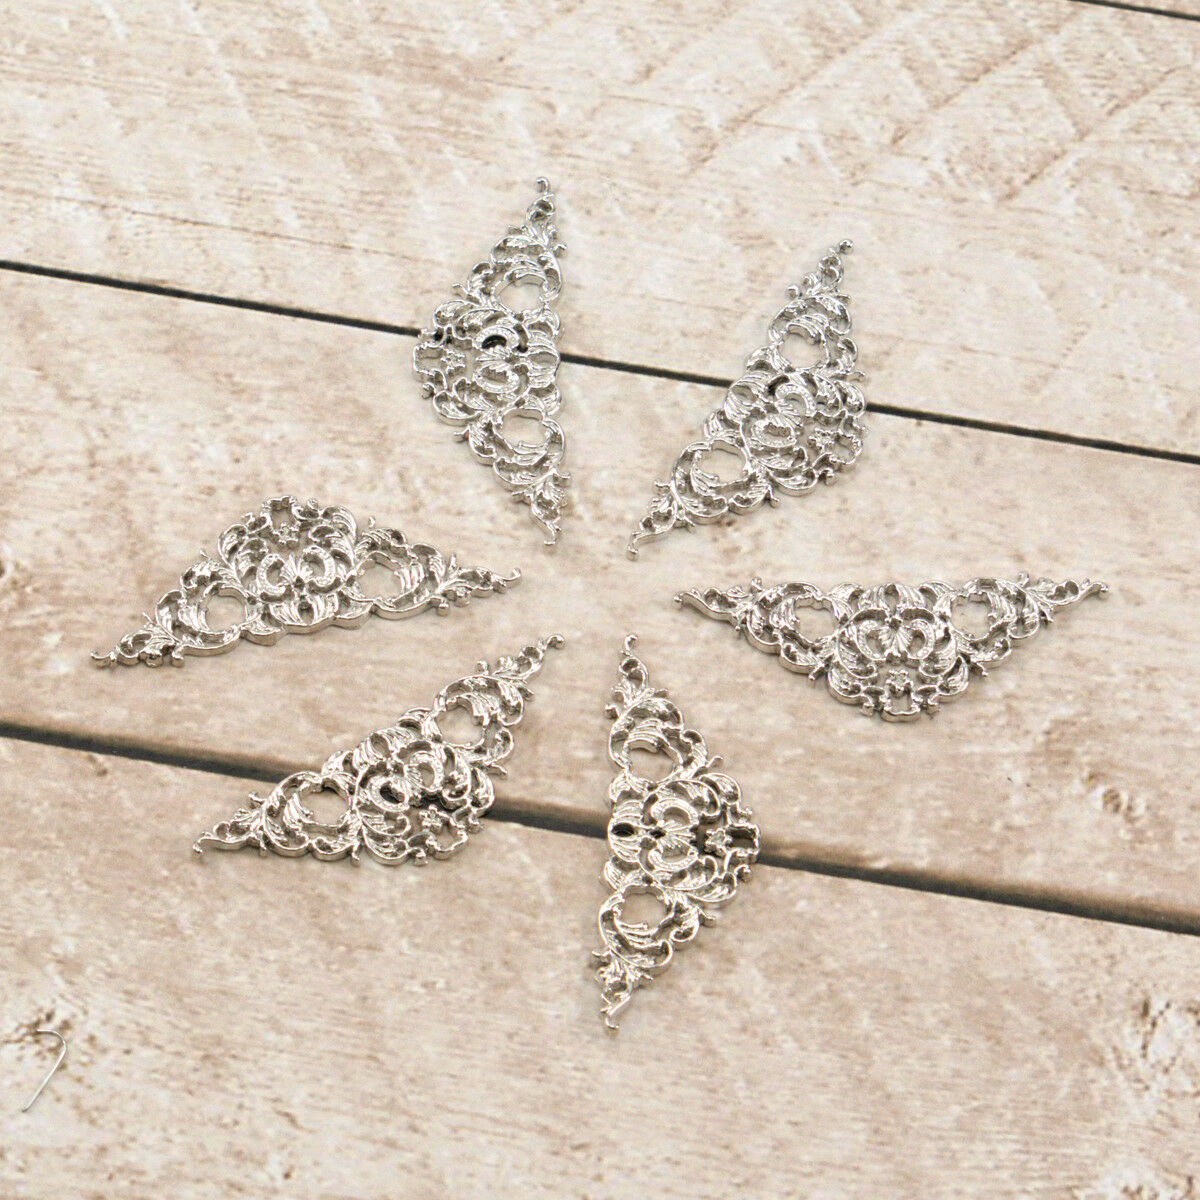 Embellishments Choose from 4 Ultimate Crafts /'BOHEMIAN BOUQUET METAL CHARMS/'